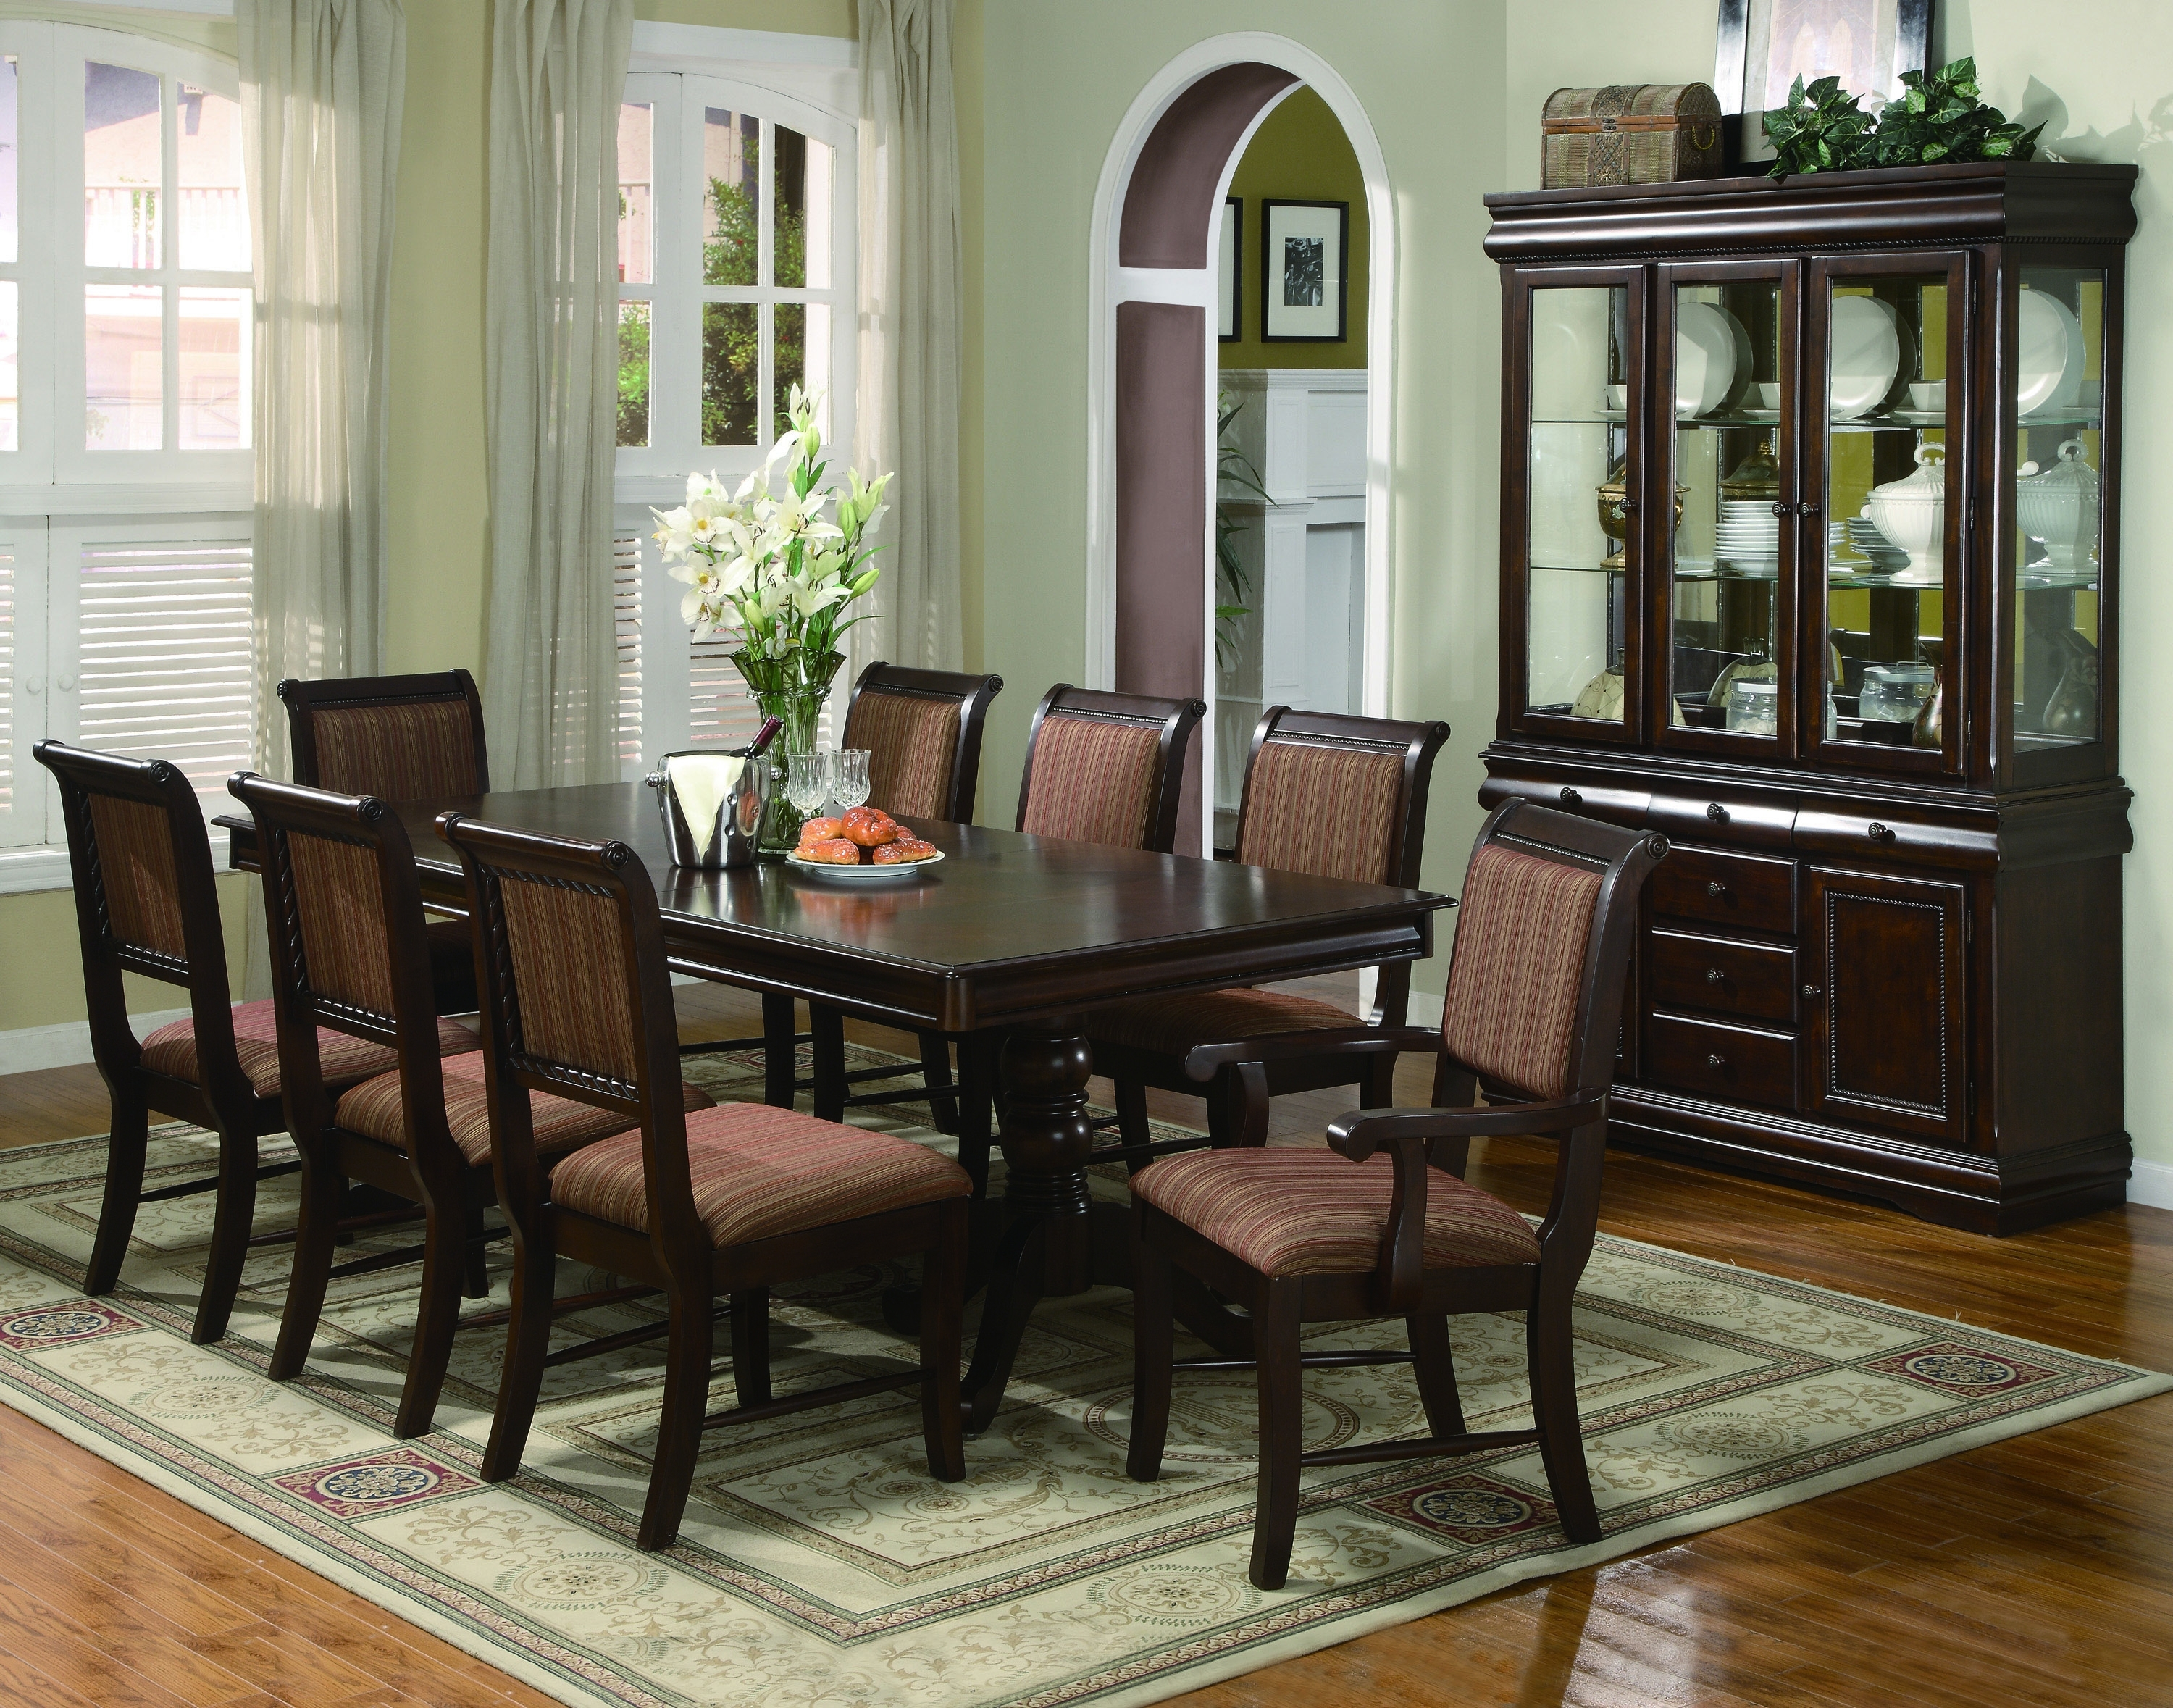 Dining Tables Set For 8 In Well Known Crown Mark 2145 Merlot 11 Pieces Traditonal Dining Table Set (View 9 of 25)